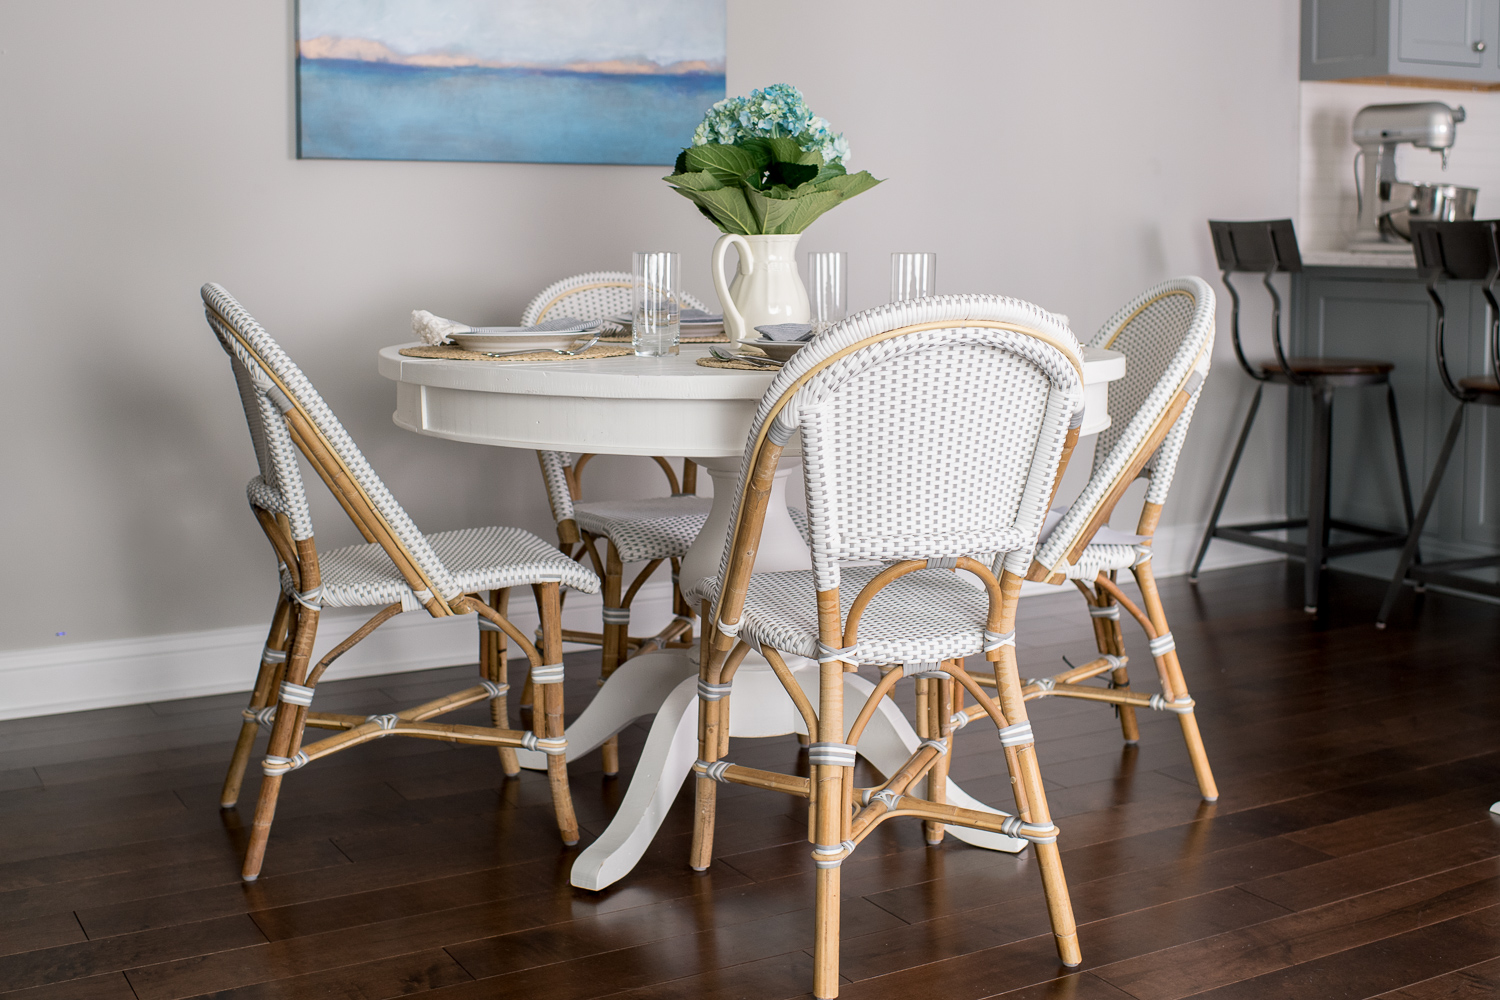 Michigan Petite Fashion And Lifestyle Blog | Serena And Lily Riviera Chairs